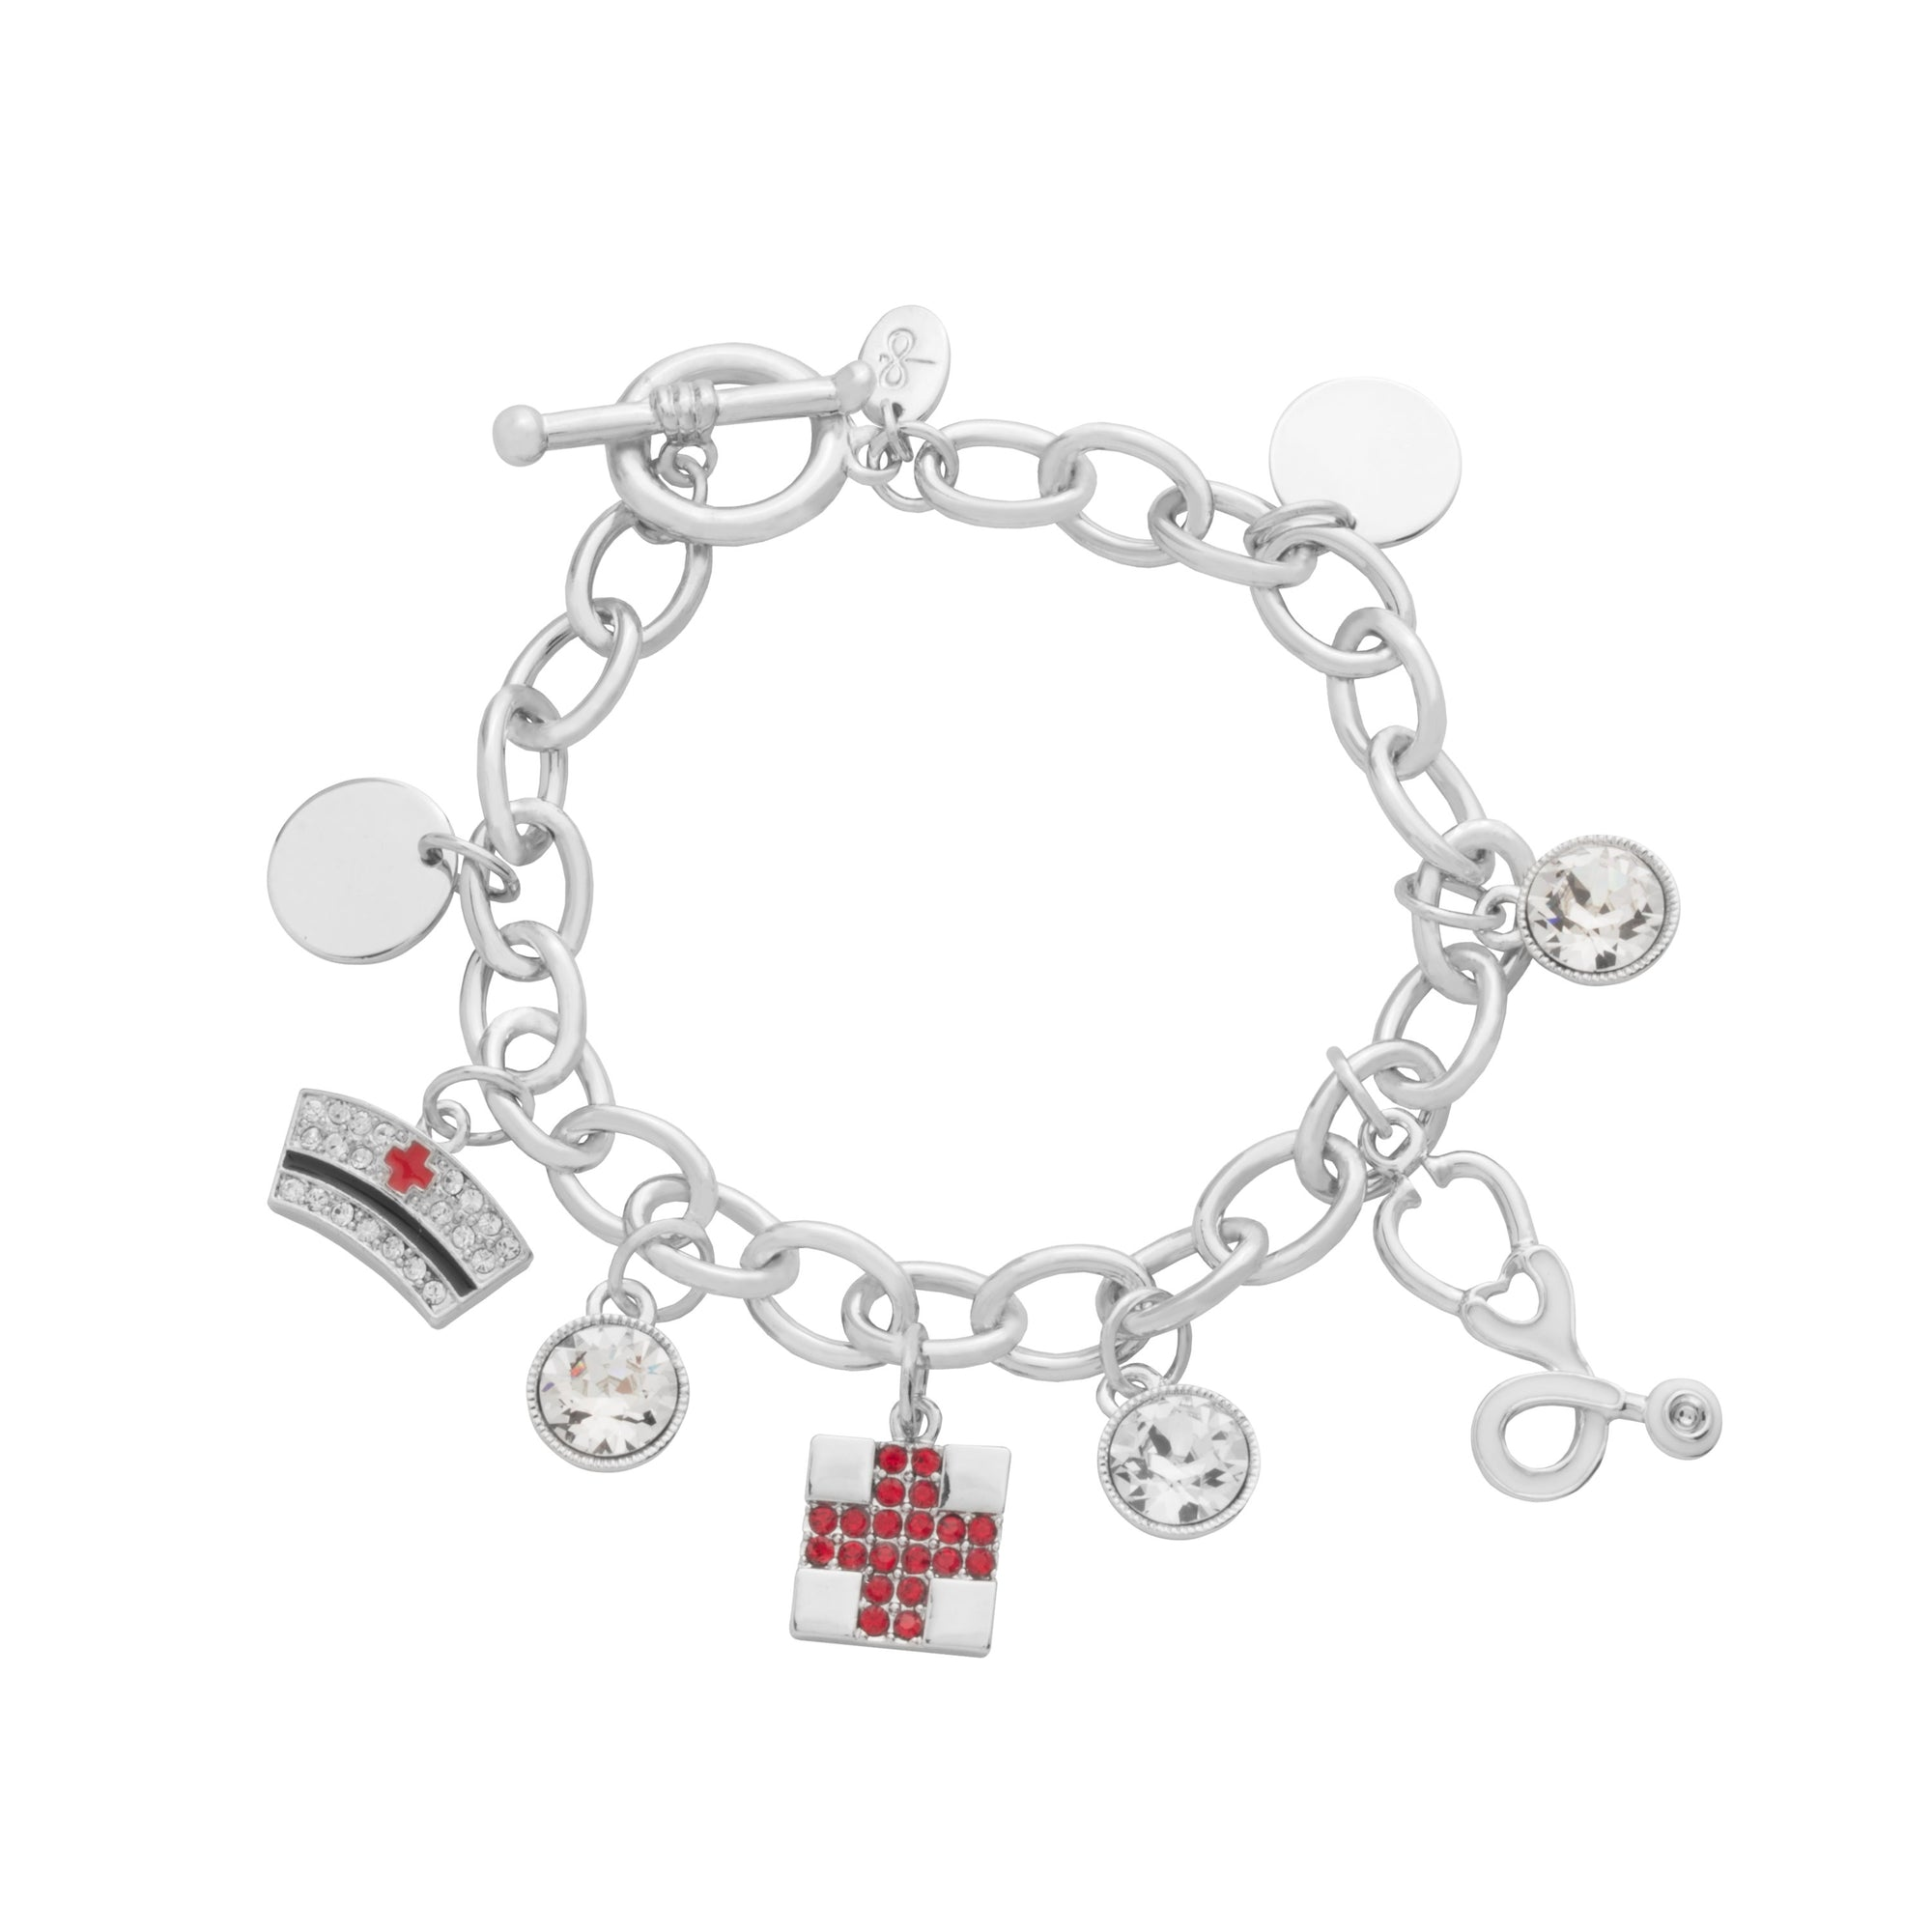 NURSE CHARM BRACELET LIGHT SIAM